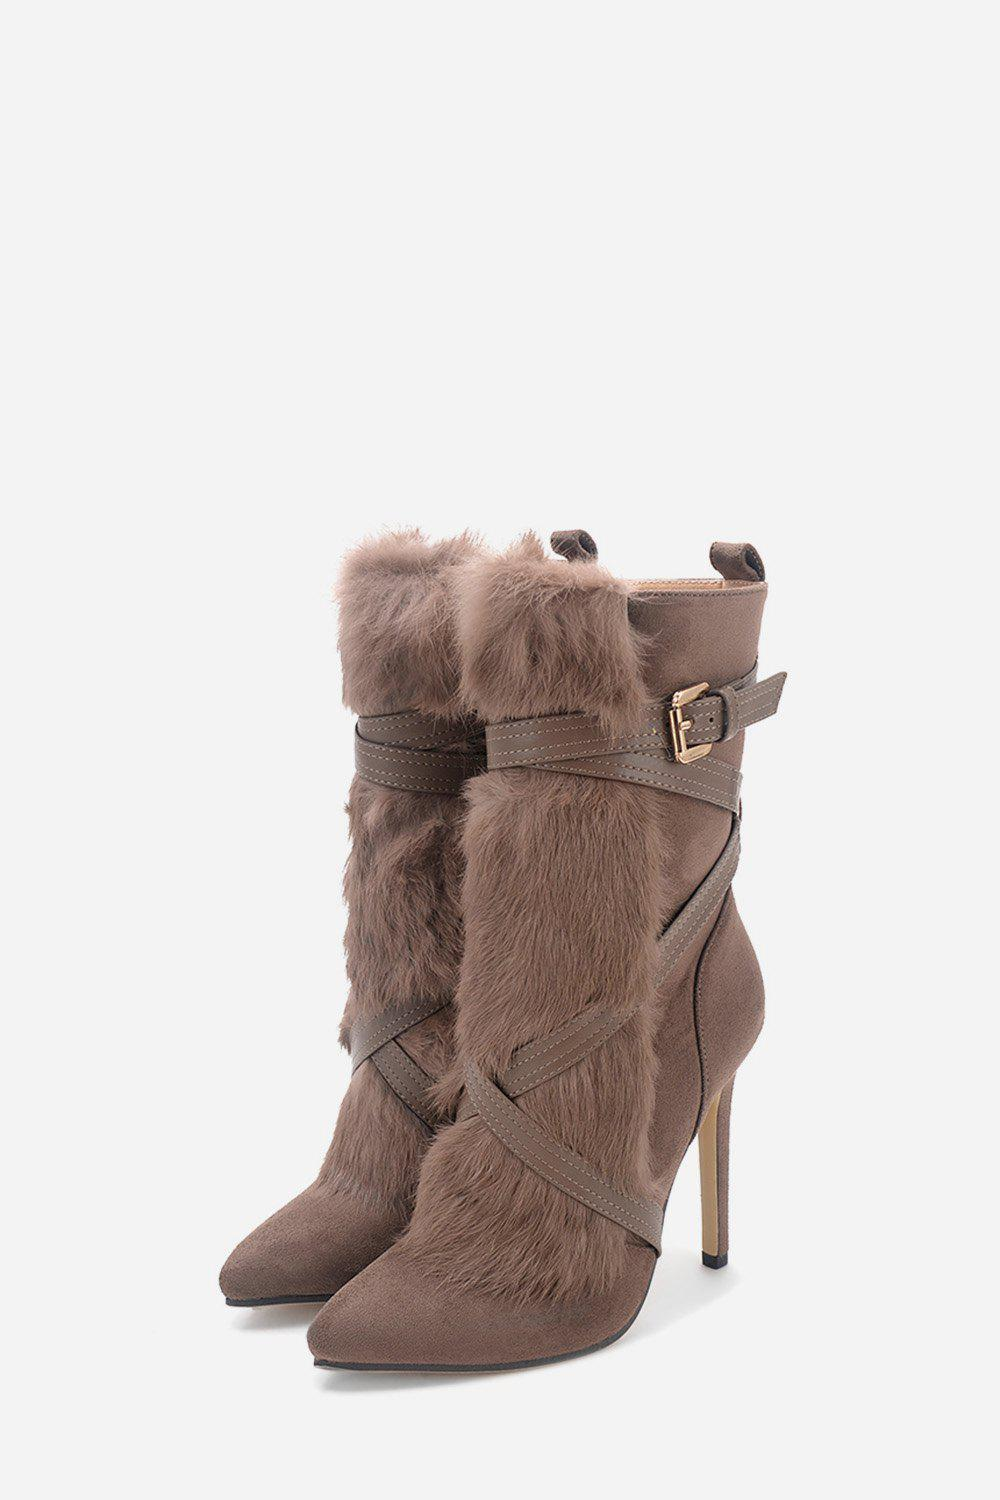 Stiletto Heel Faux Fur Ankle Boots faux suede stiletto ankle boots dusty rose